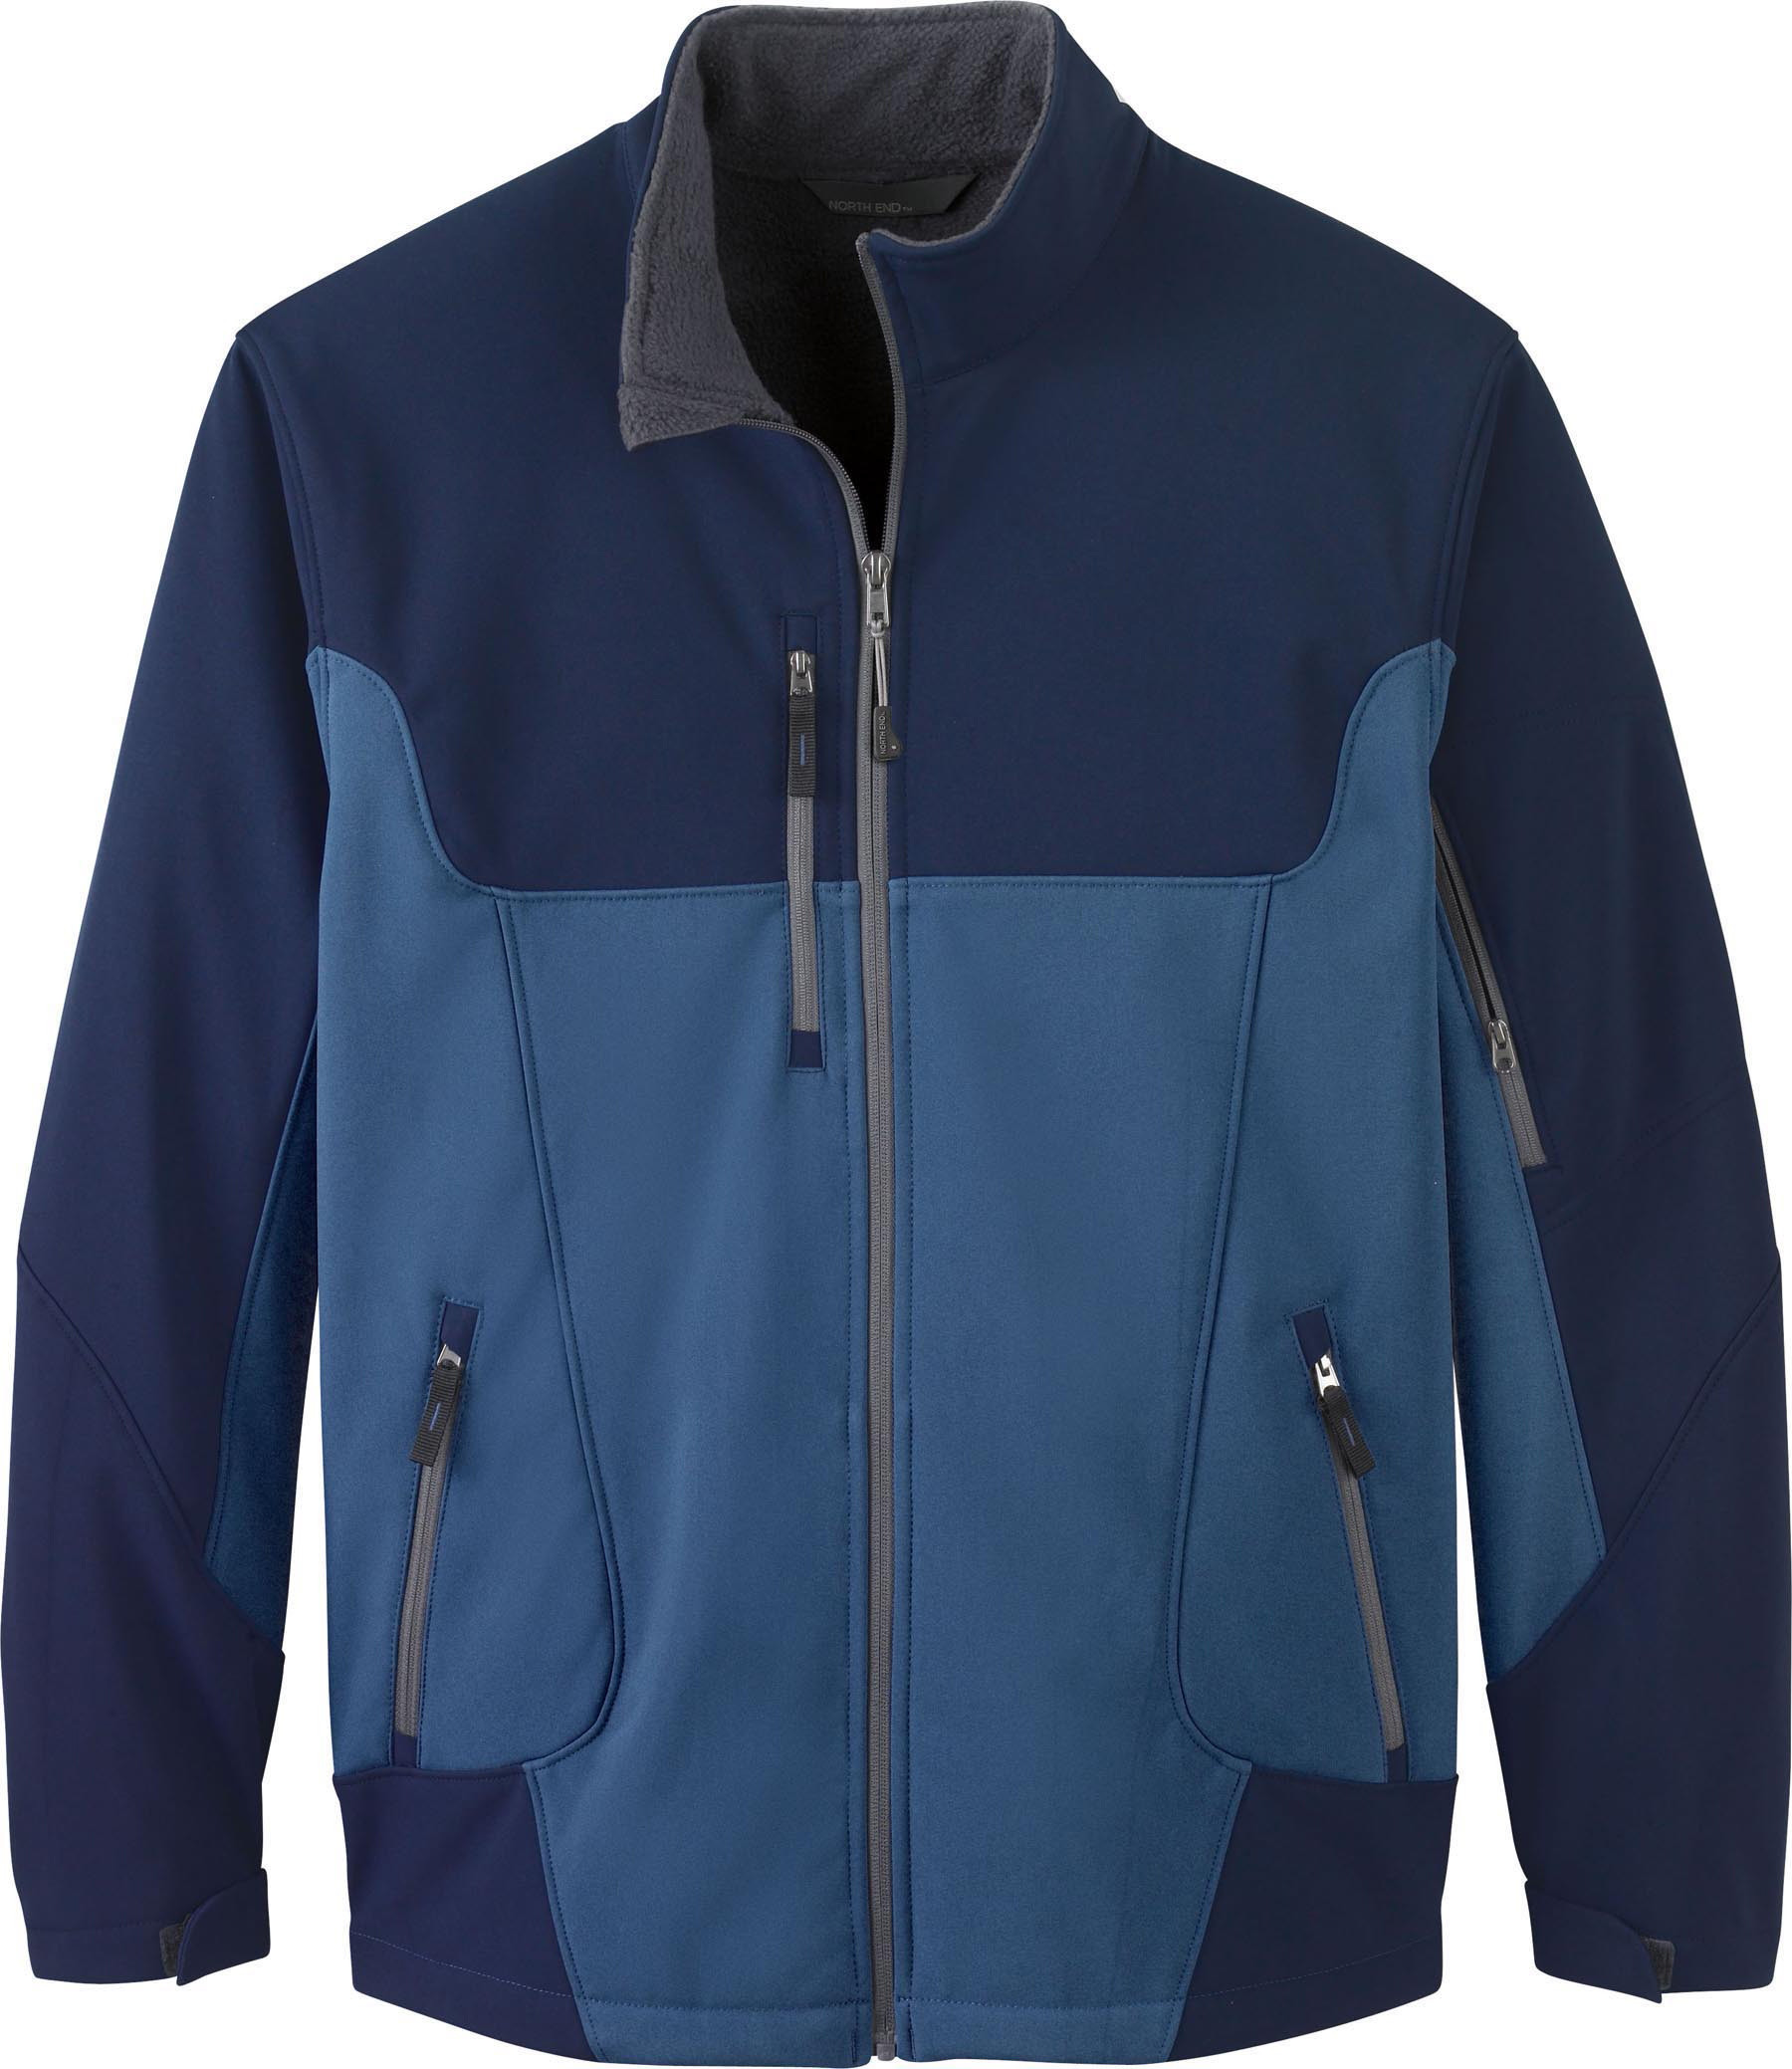 Ash City UTK 1 Warm.Logik 88156 - Compass Men's Color-...